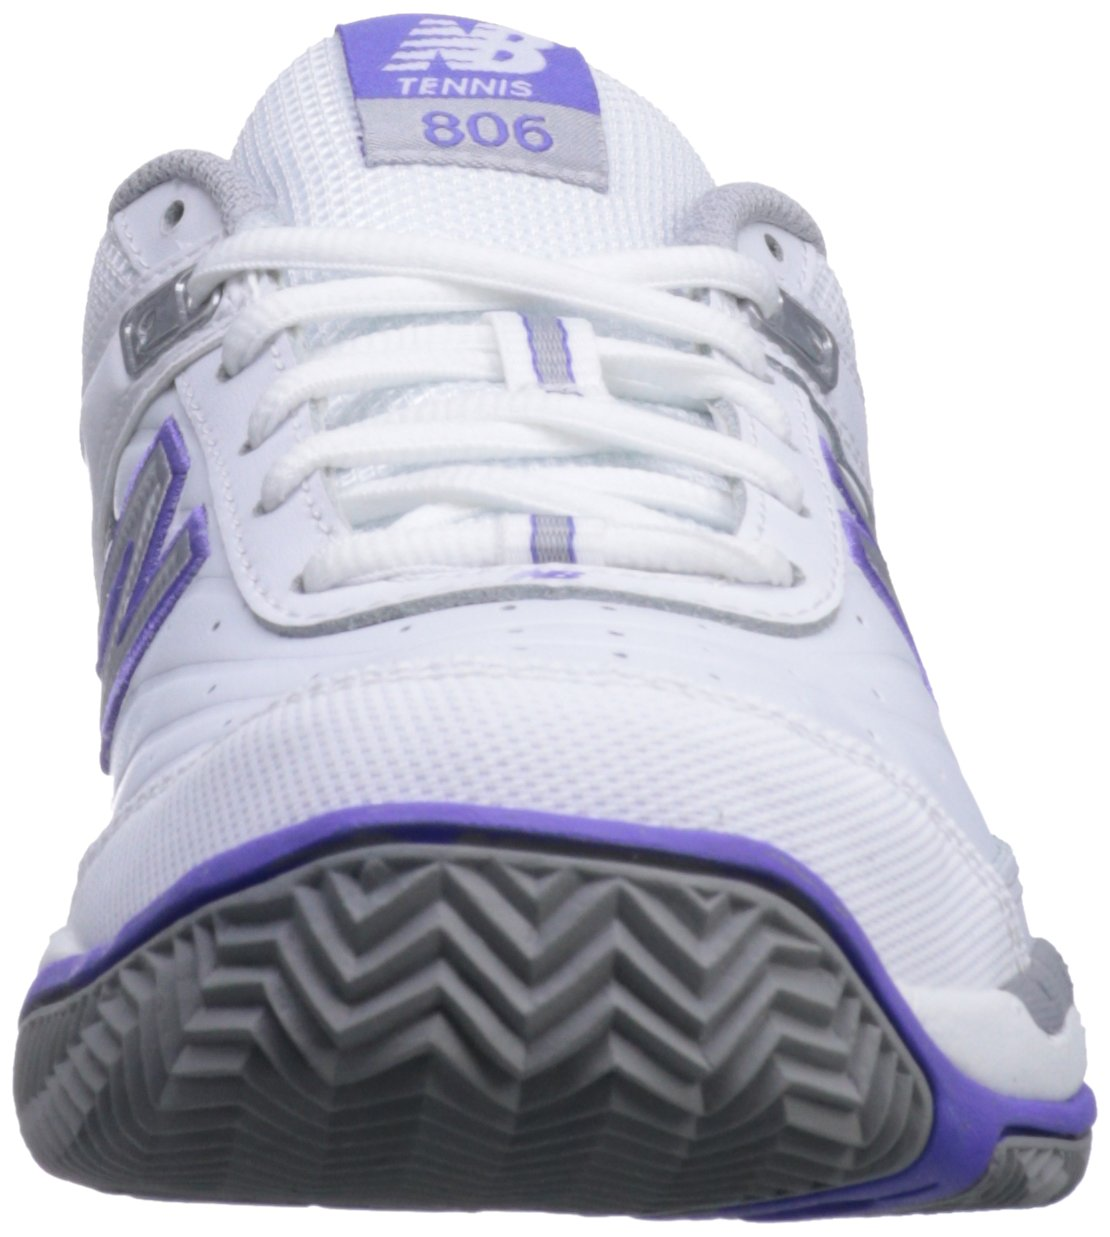 New Balance Women's 9 WC806 Tennis-W Tennis Shoe B0098G2LTU 9 Women's D US|White 027bab